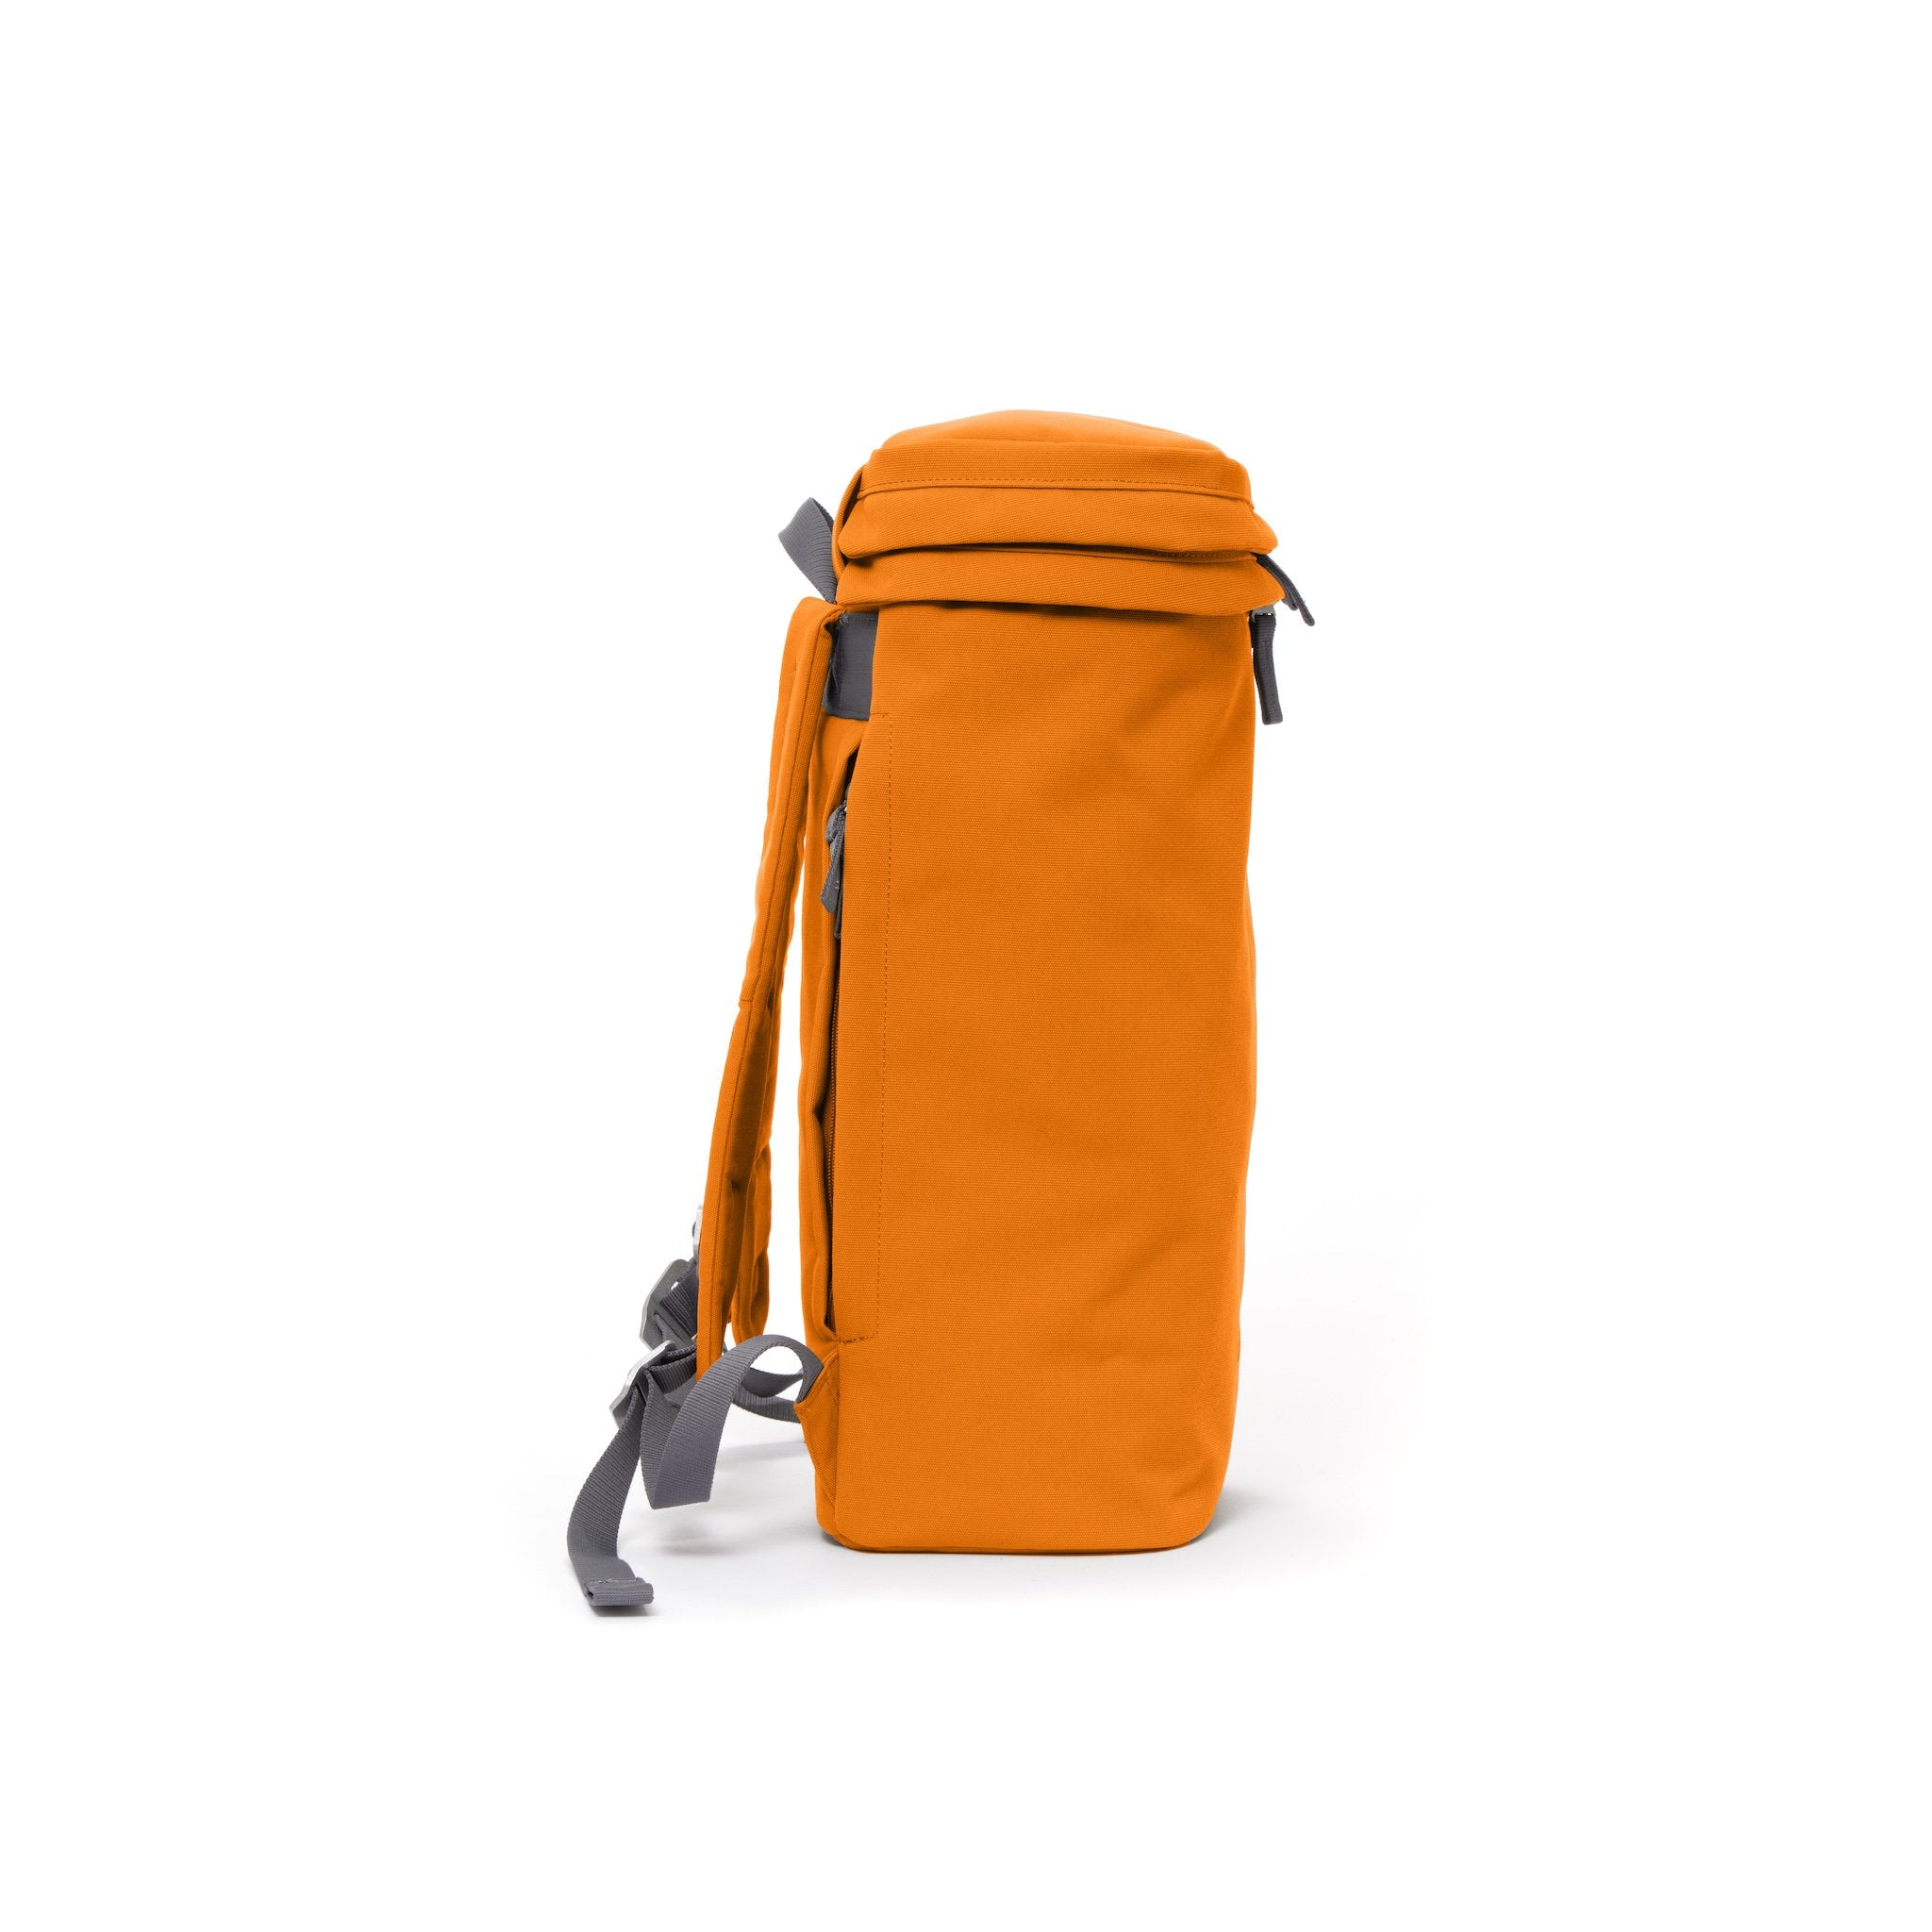 Orange canvas backpack with top zip pocket.